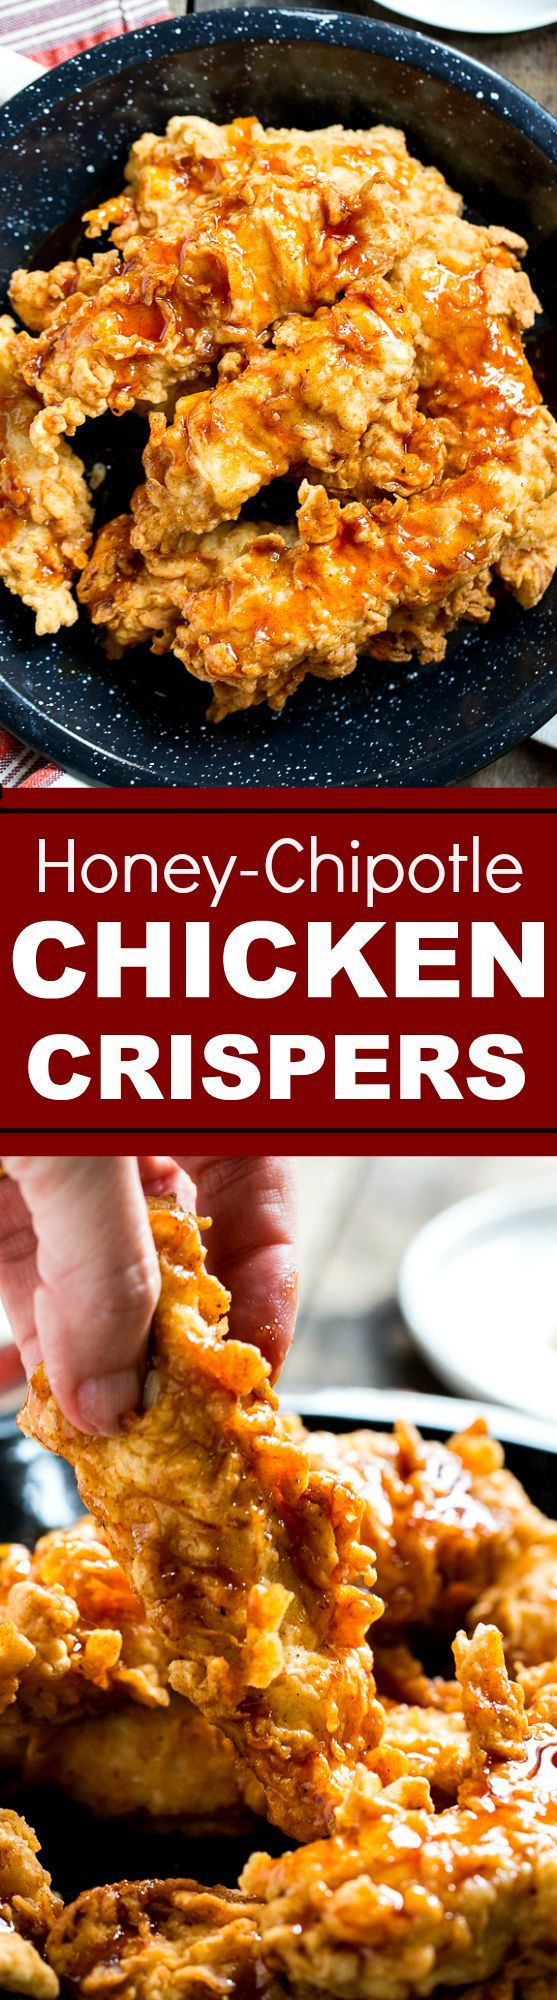 Honey Chipotle Chicken Crispers (Chili's copycat)